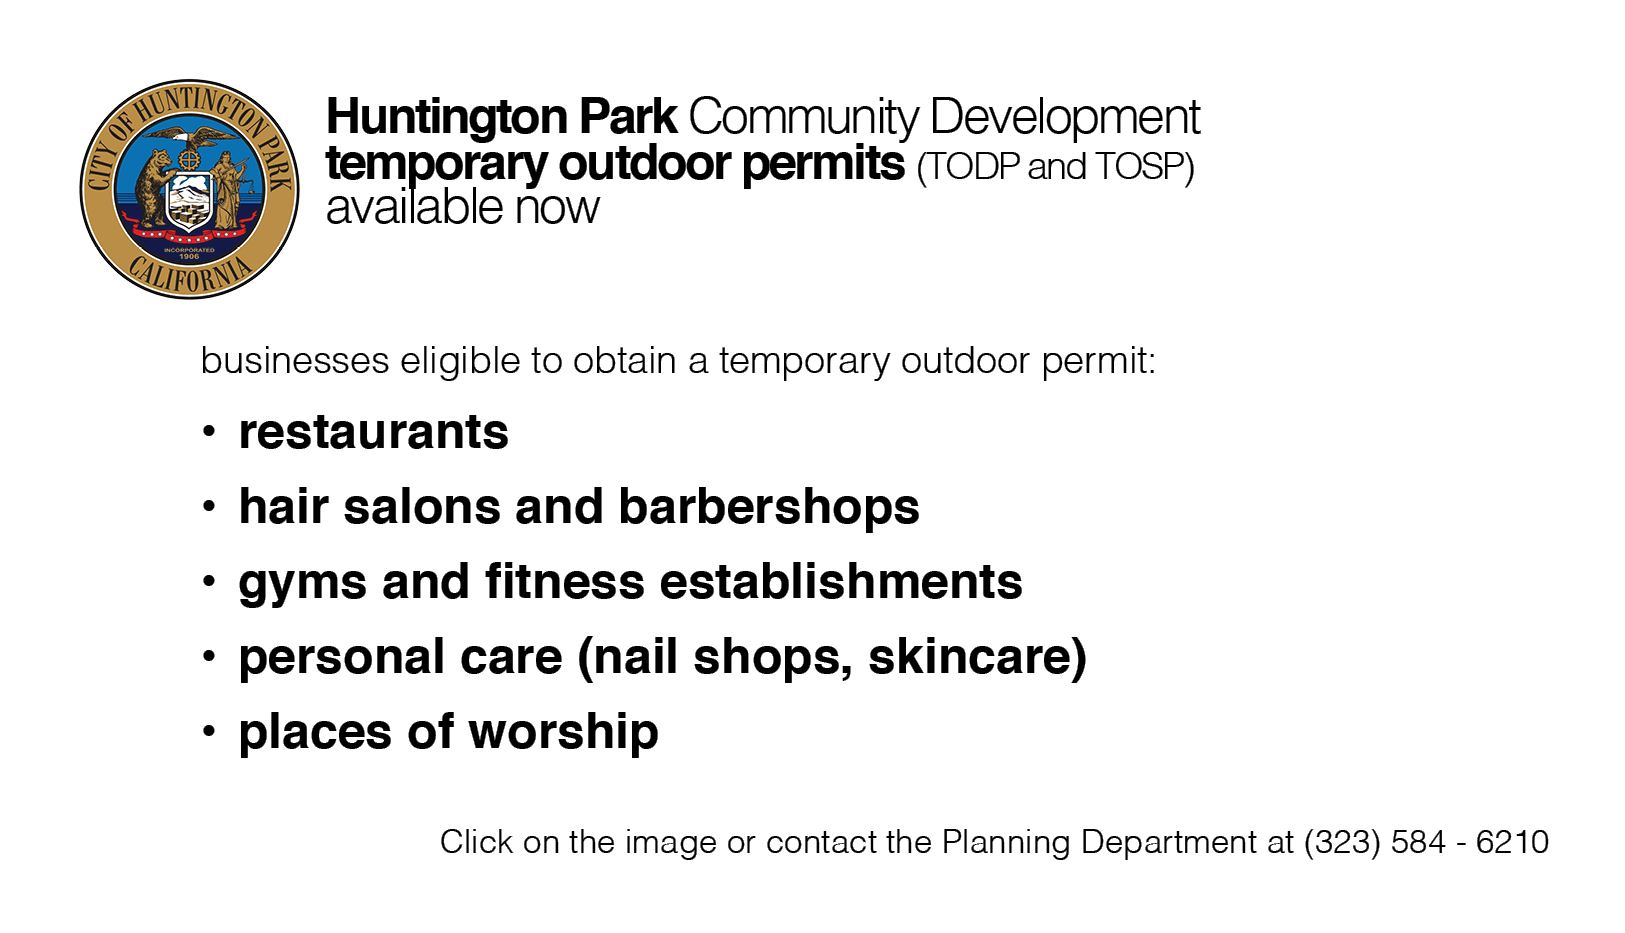 Temporary Outdoor Permits